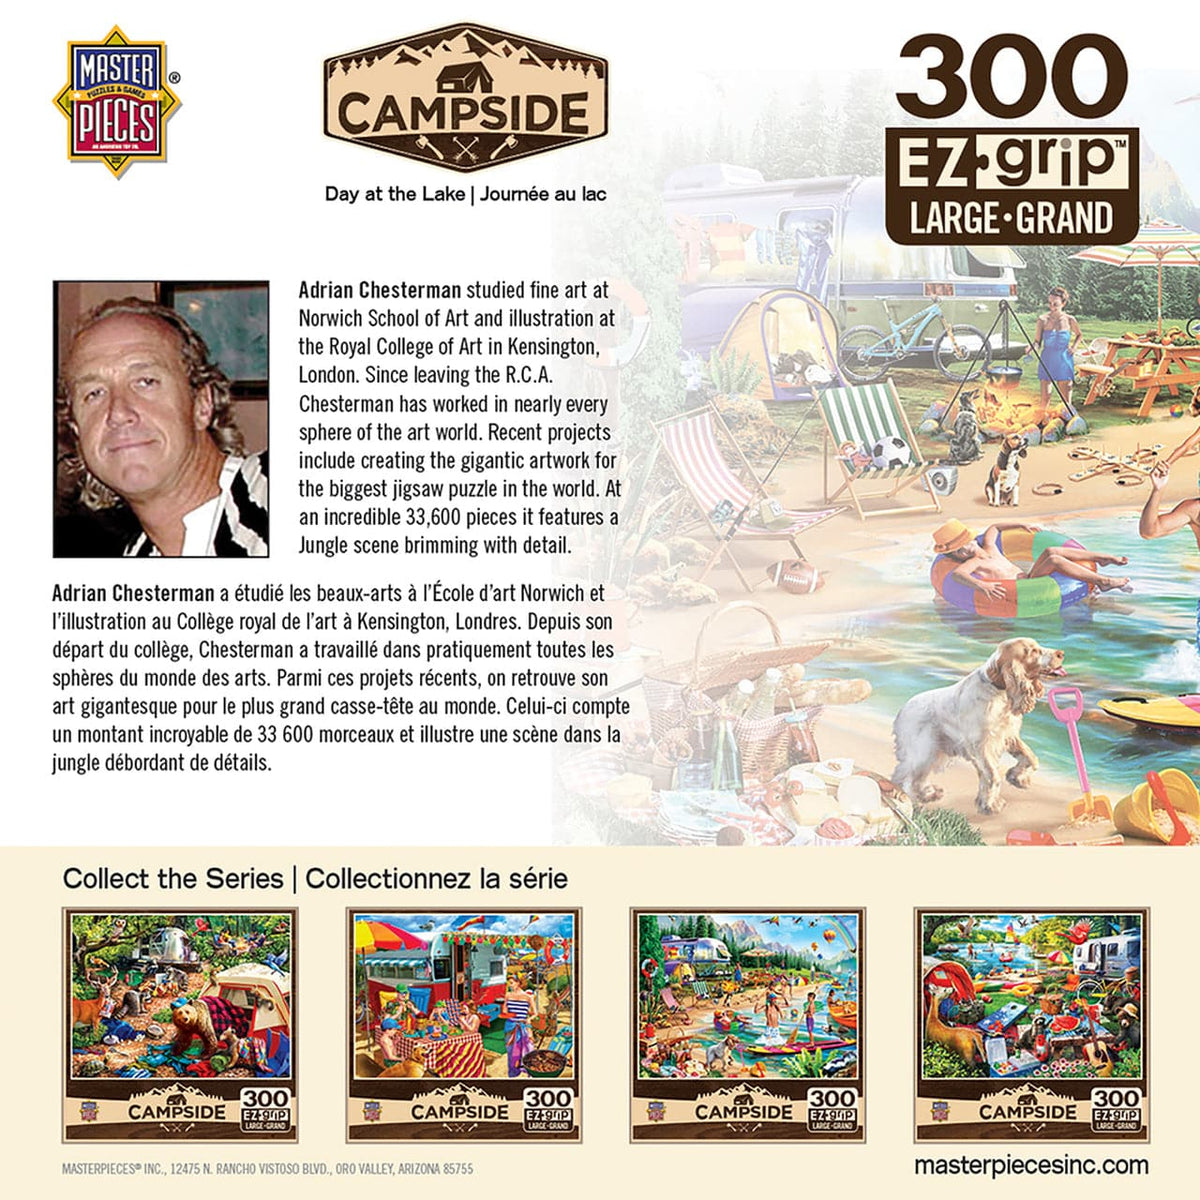 Campside - Day at the Lake - 300 Piece Puzzle